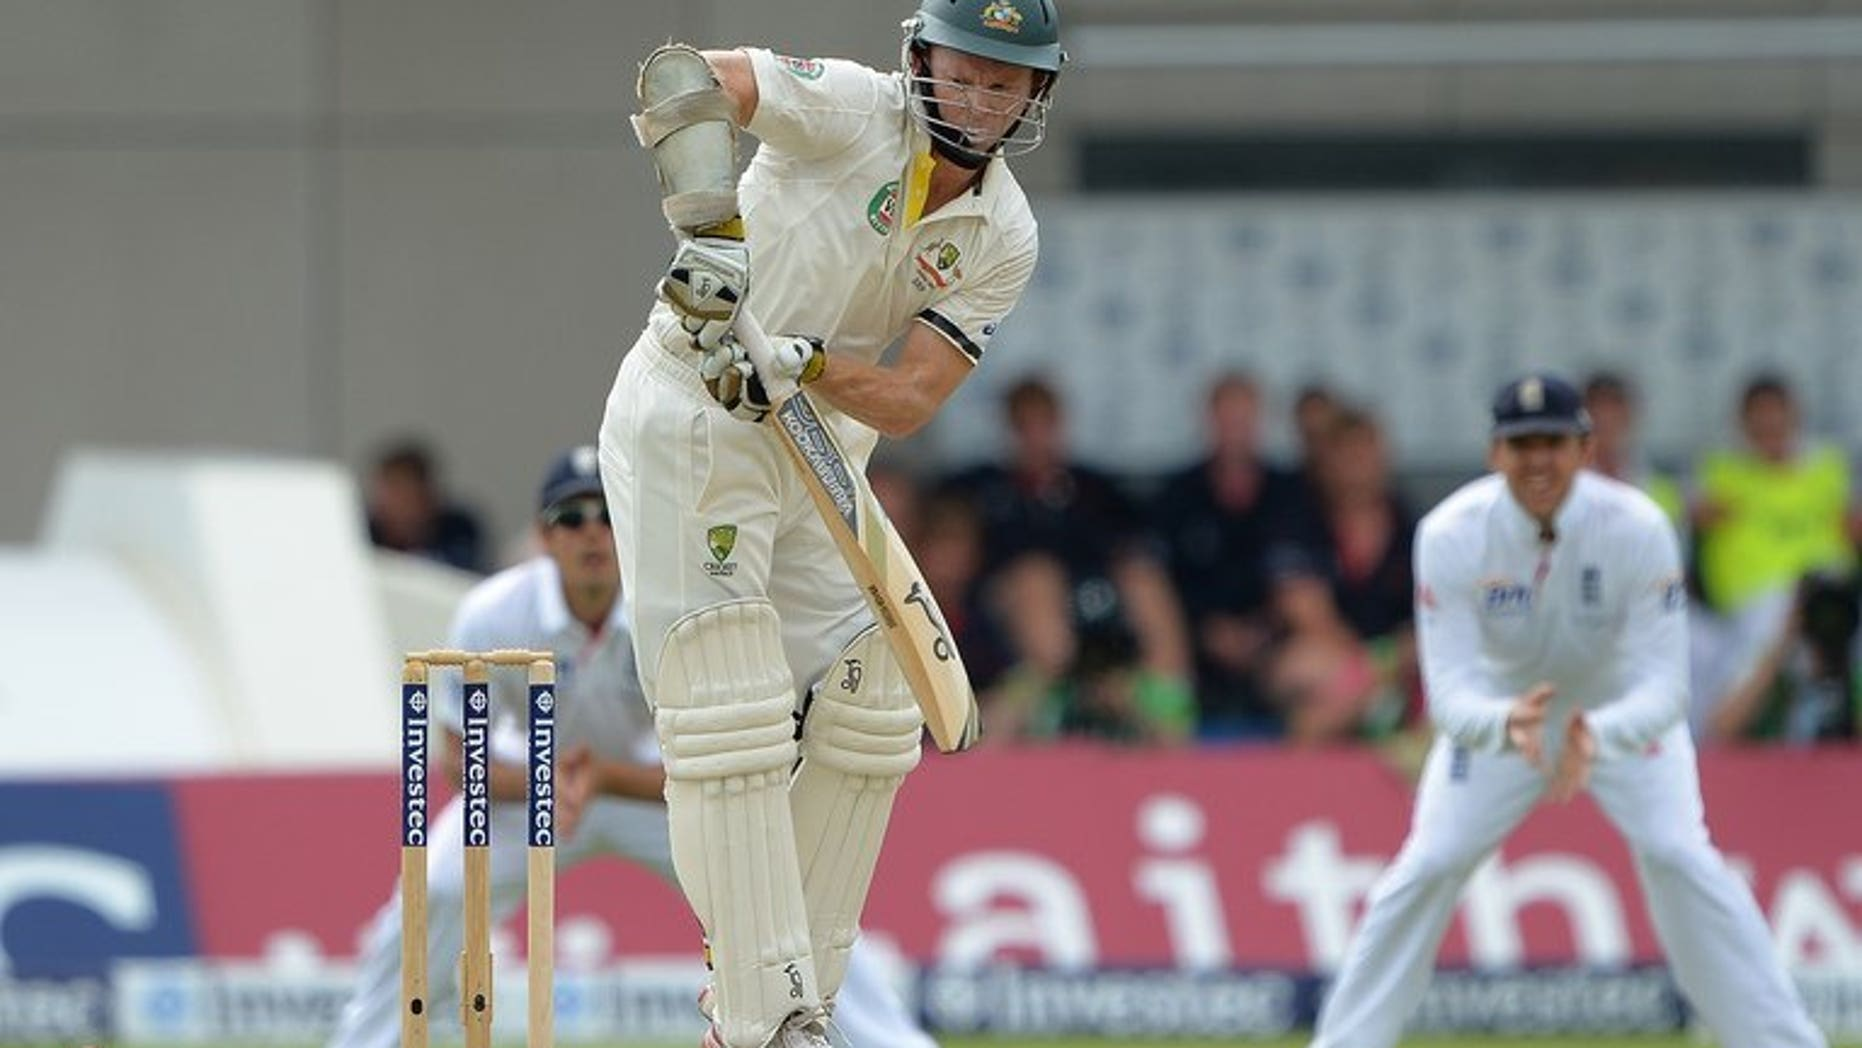 Australia's Chris Rogers (centre) bats during the third cricket test match of the 2013 Ashes series between England and Australia at Old Trafford in Manchester on August 1, 2013. Rogers's unbeaten fifty saw Australia make a steady start to their must-win third Ashes Test against England at Manchester's Old Trafford ground.